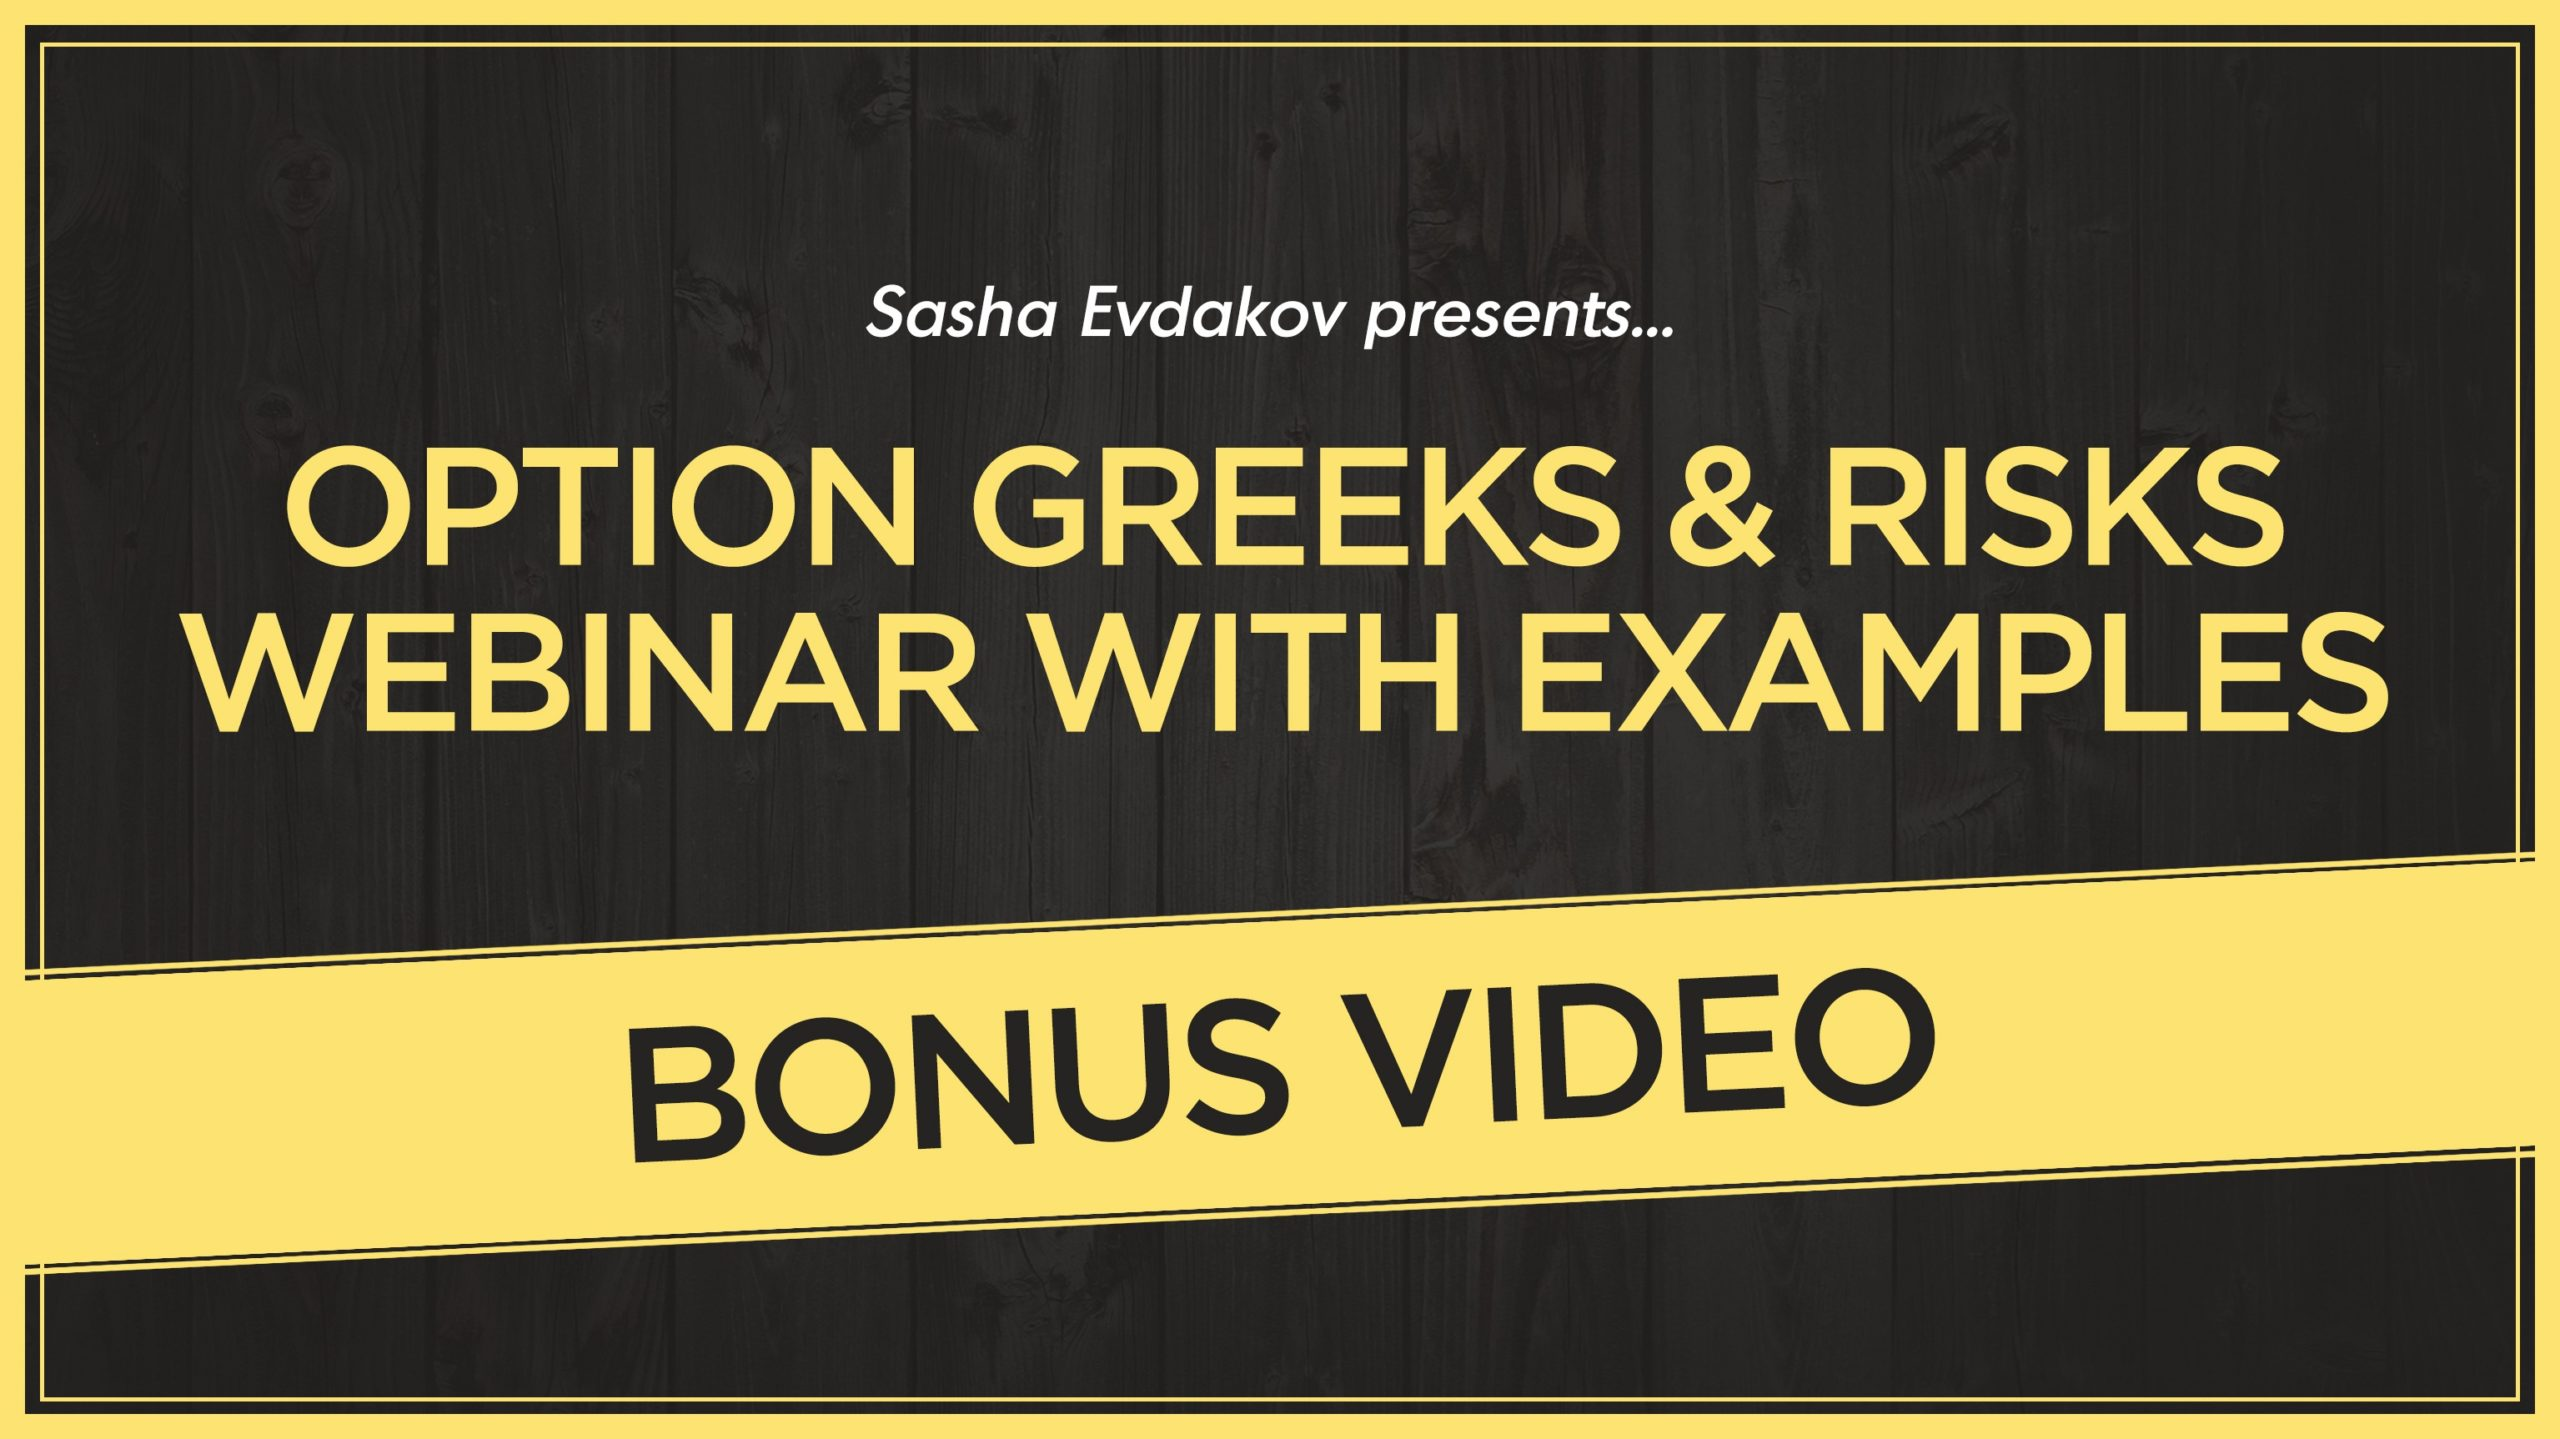 Options Greeks & Risks Webinar with Examples Bonus Video Thumbnail